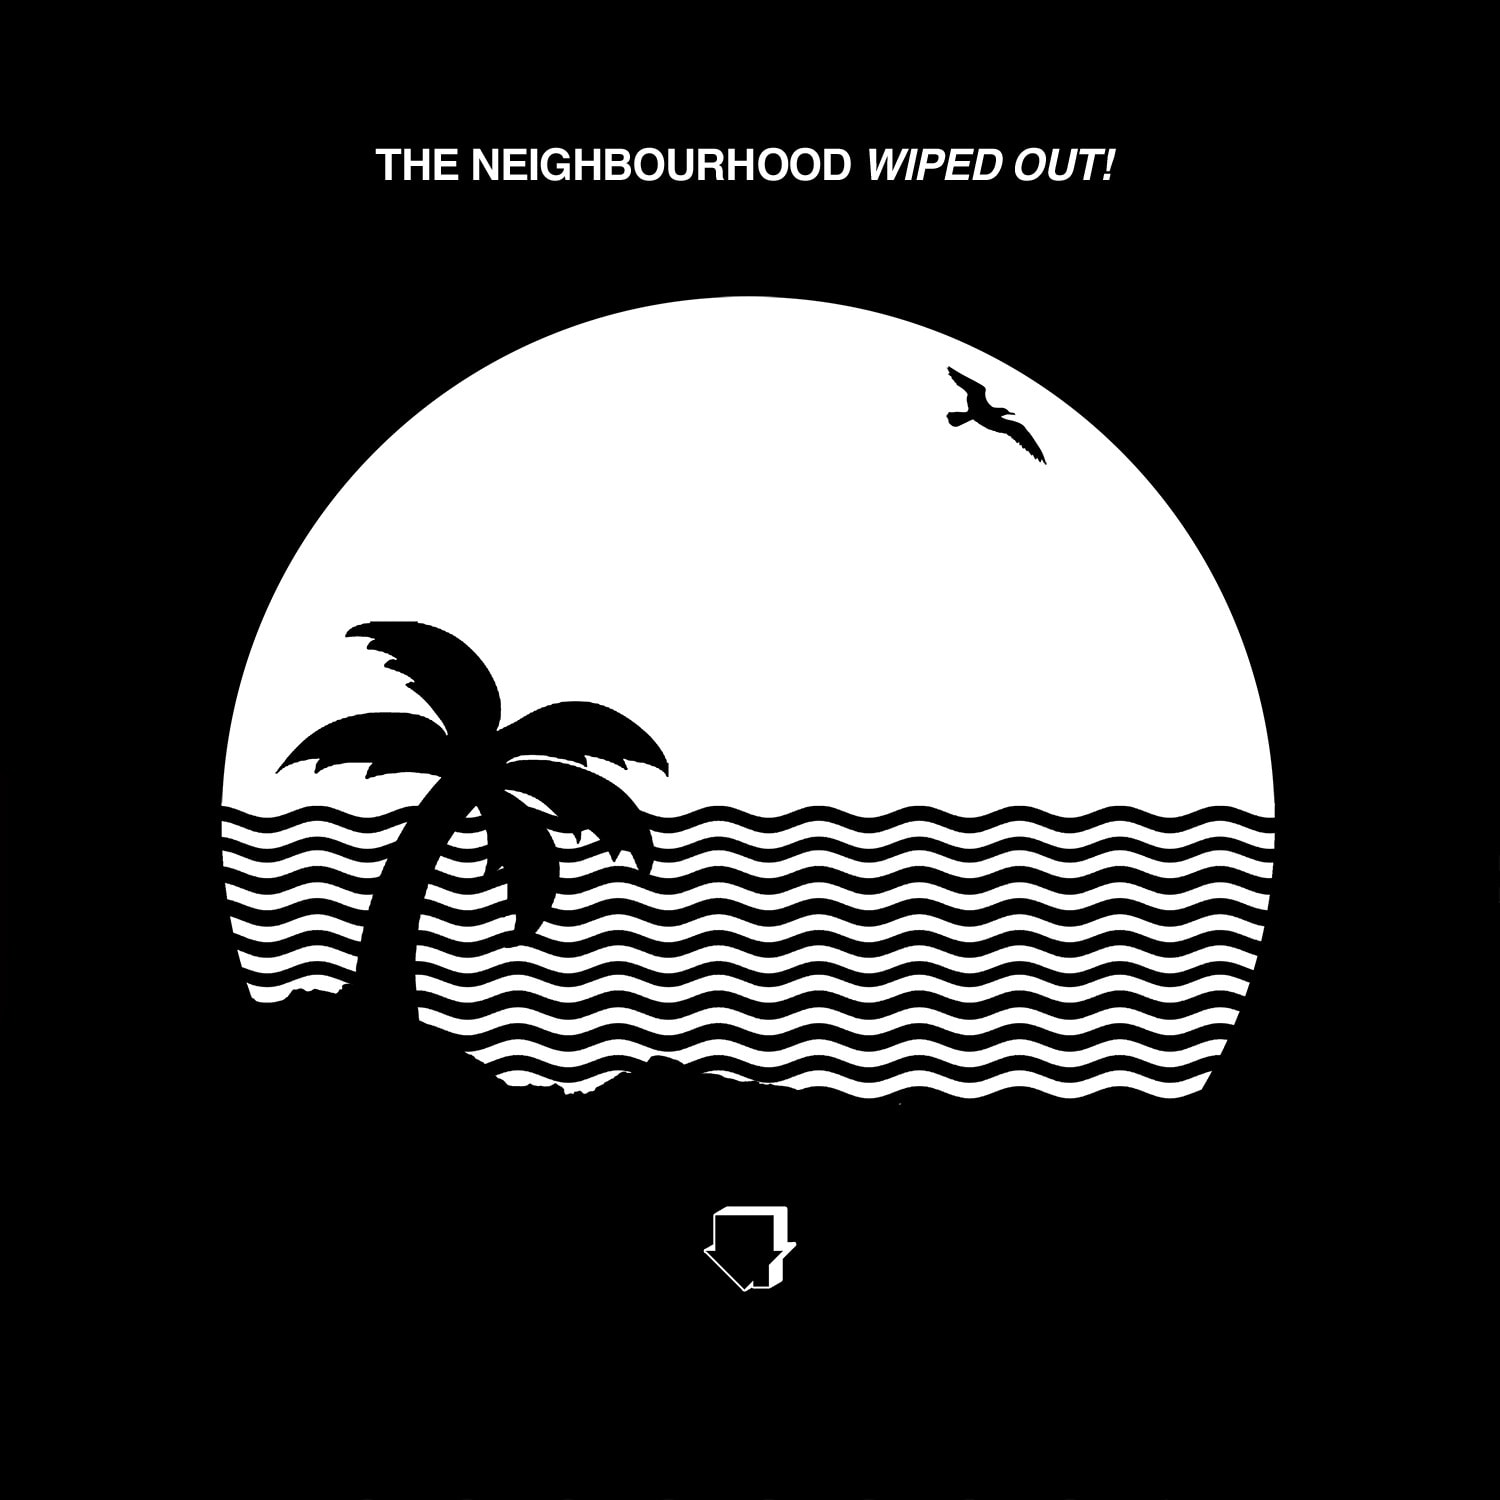 The NBHD Wiped Out! Album Artwork-86852154